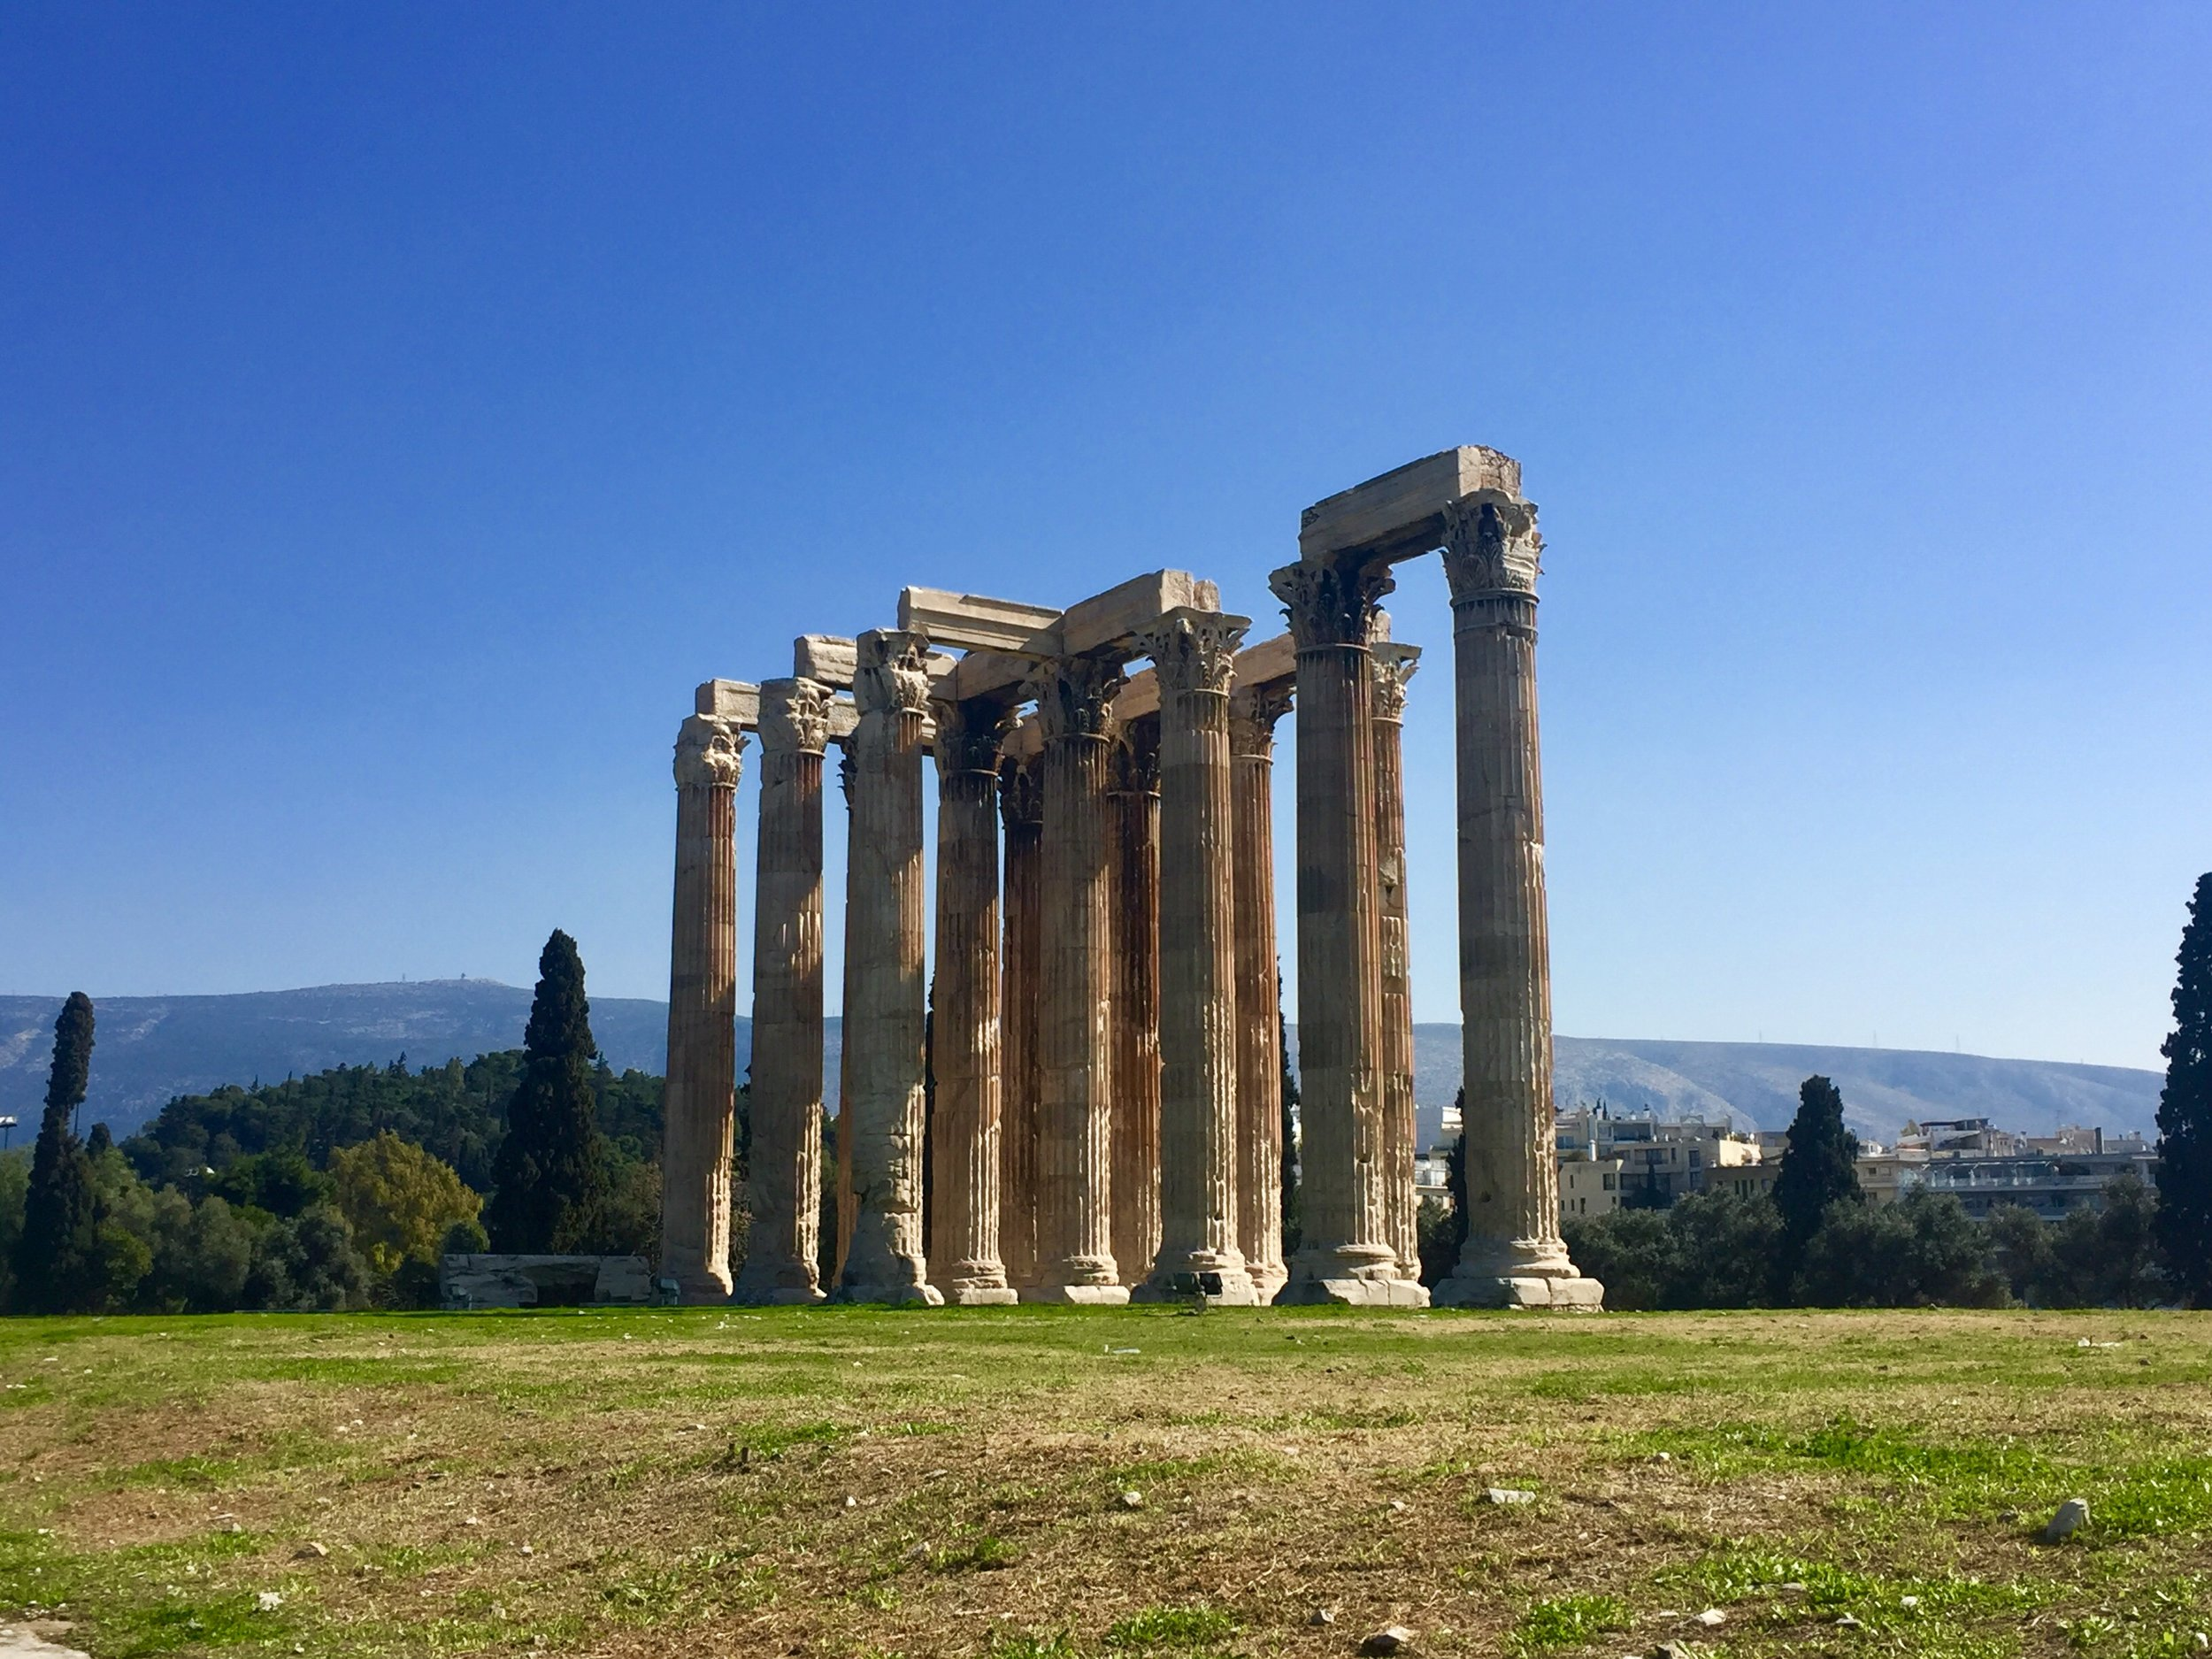 Temple of Olympian Zeus (begun in the sixth century B.C.E., but not completed until the second century C.E.)